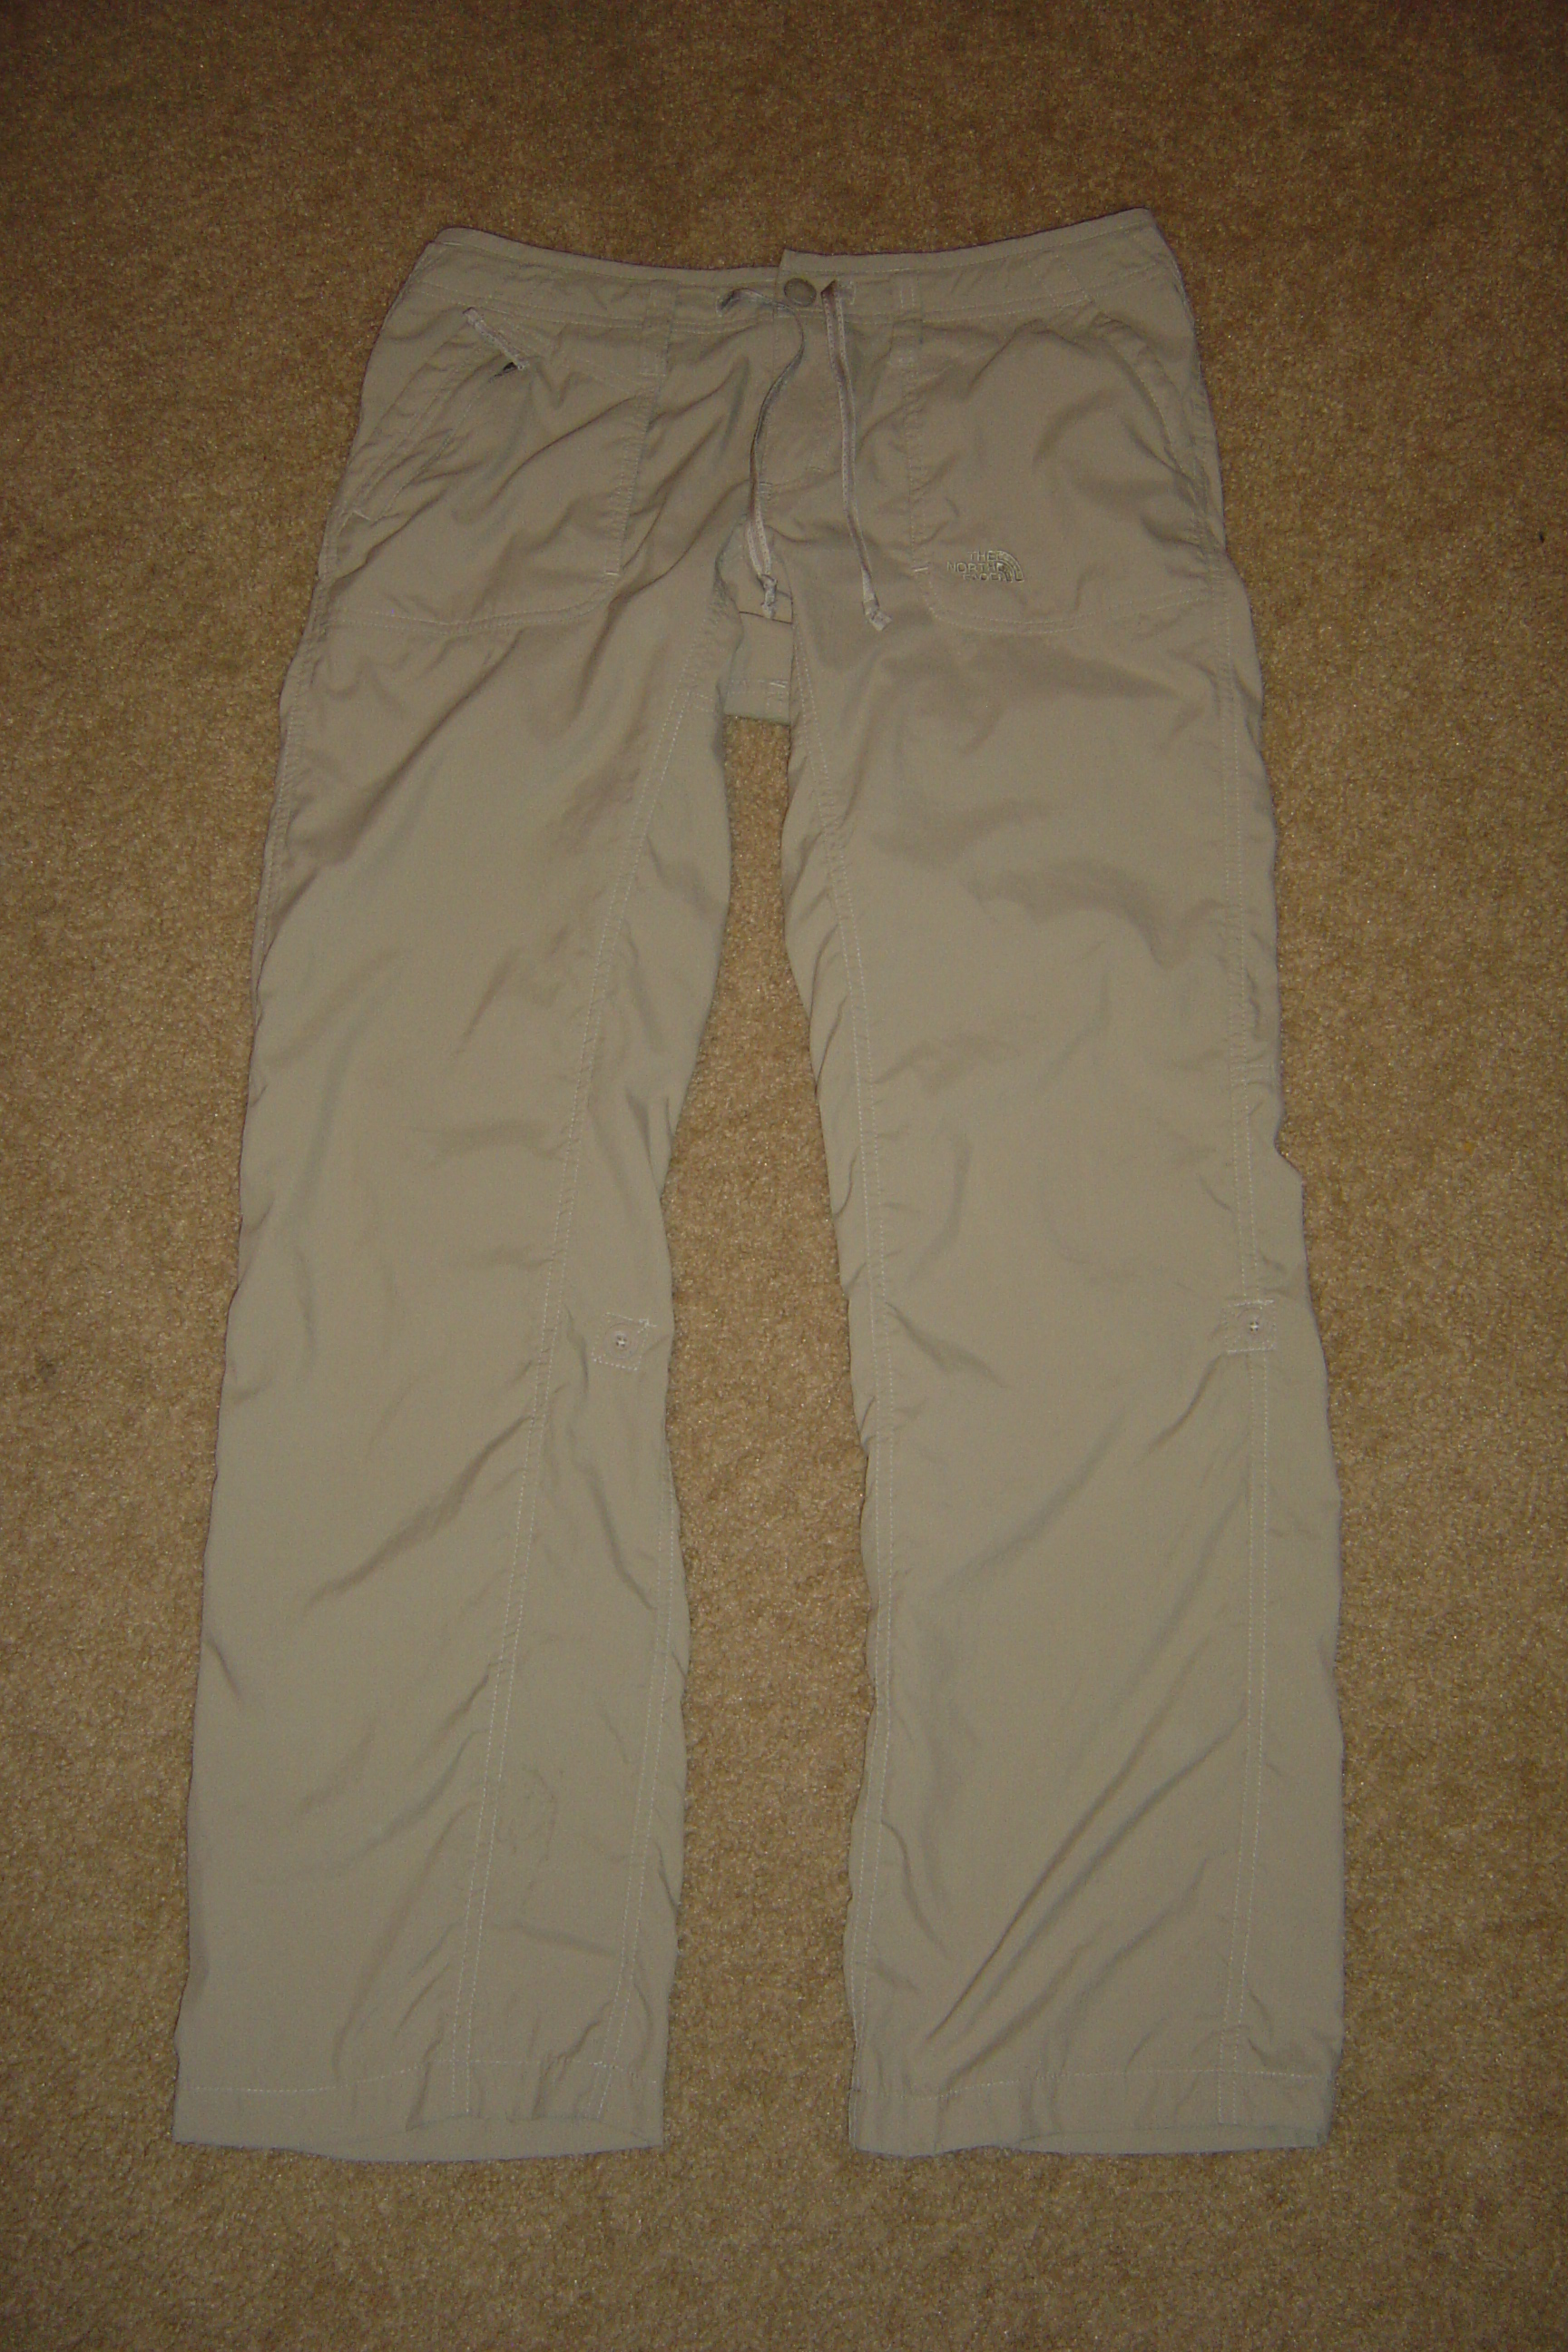 My hiking pants from the front